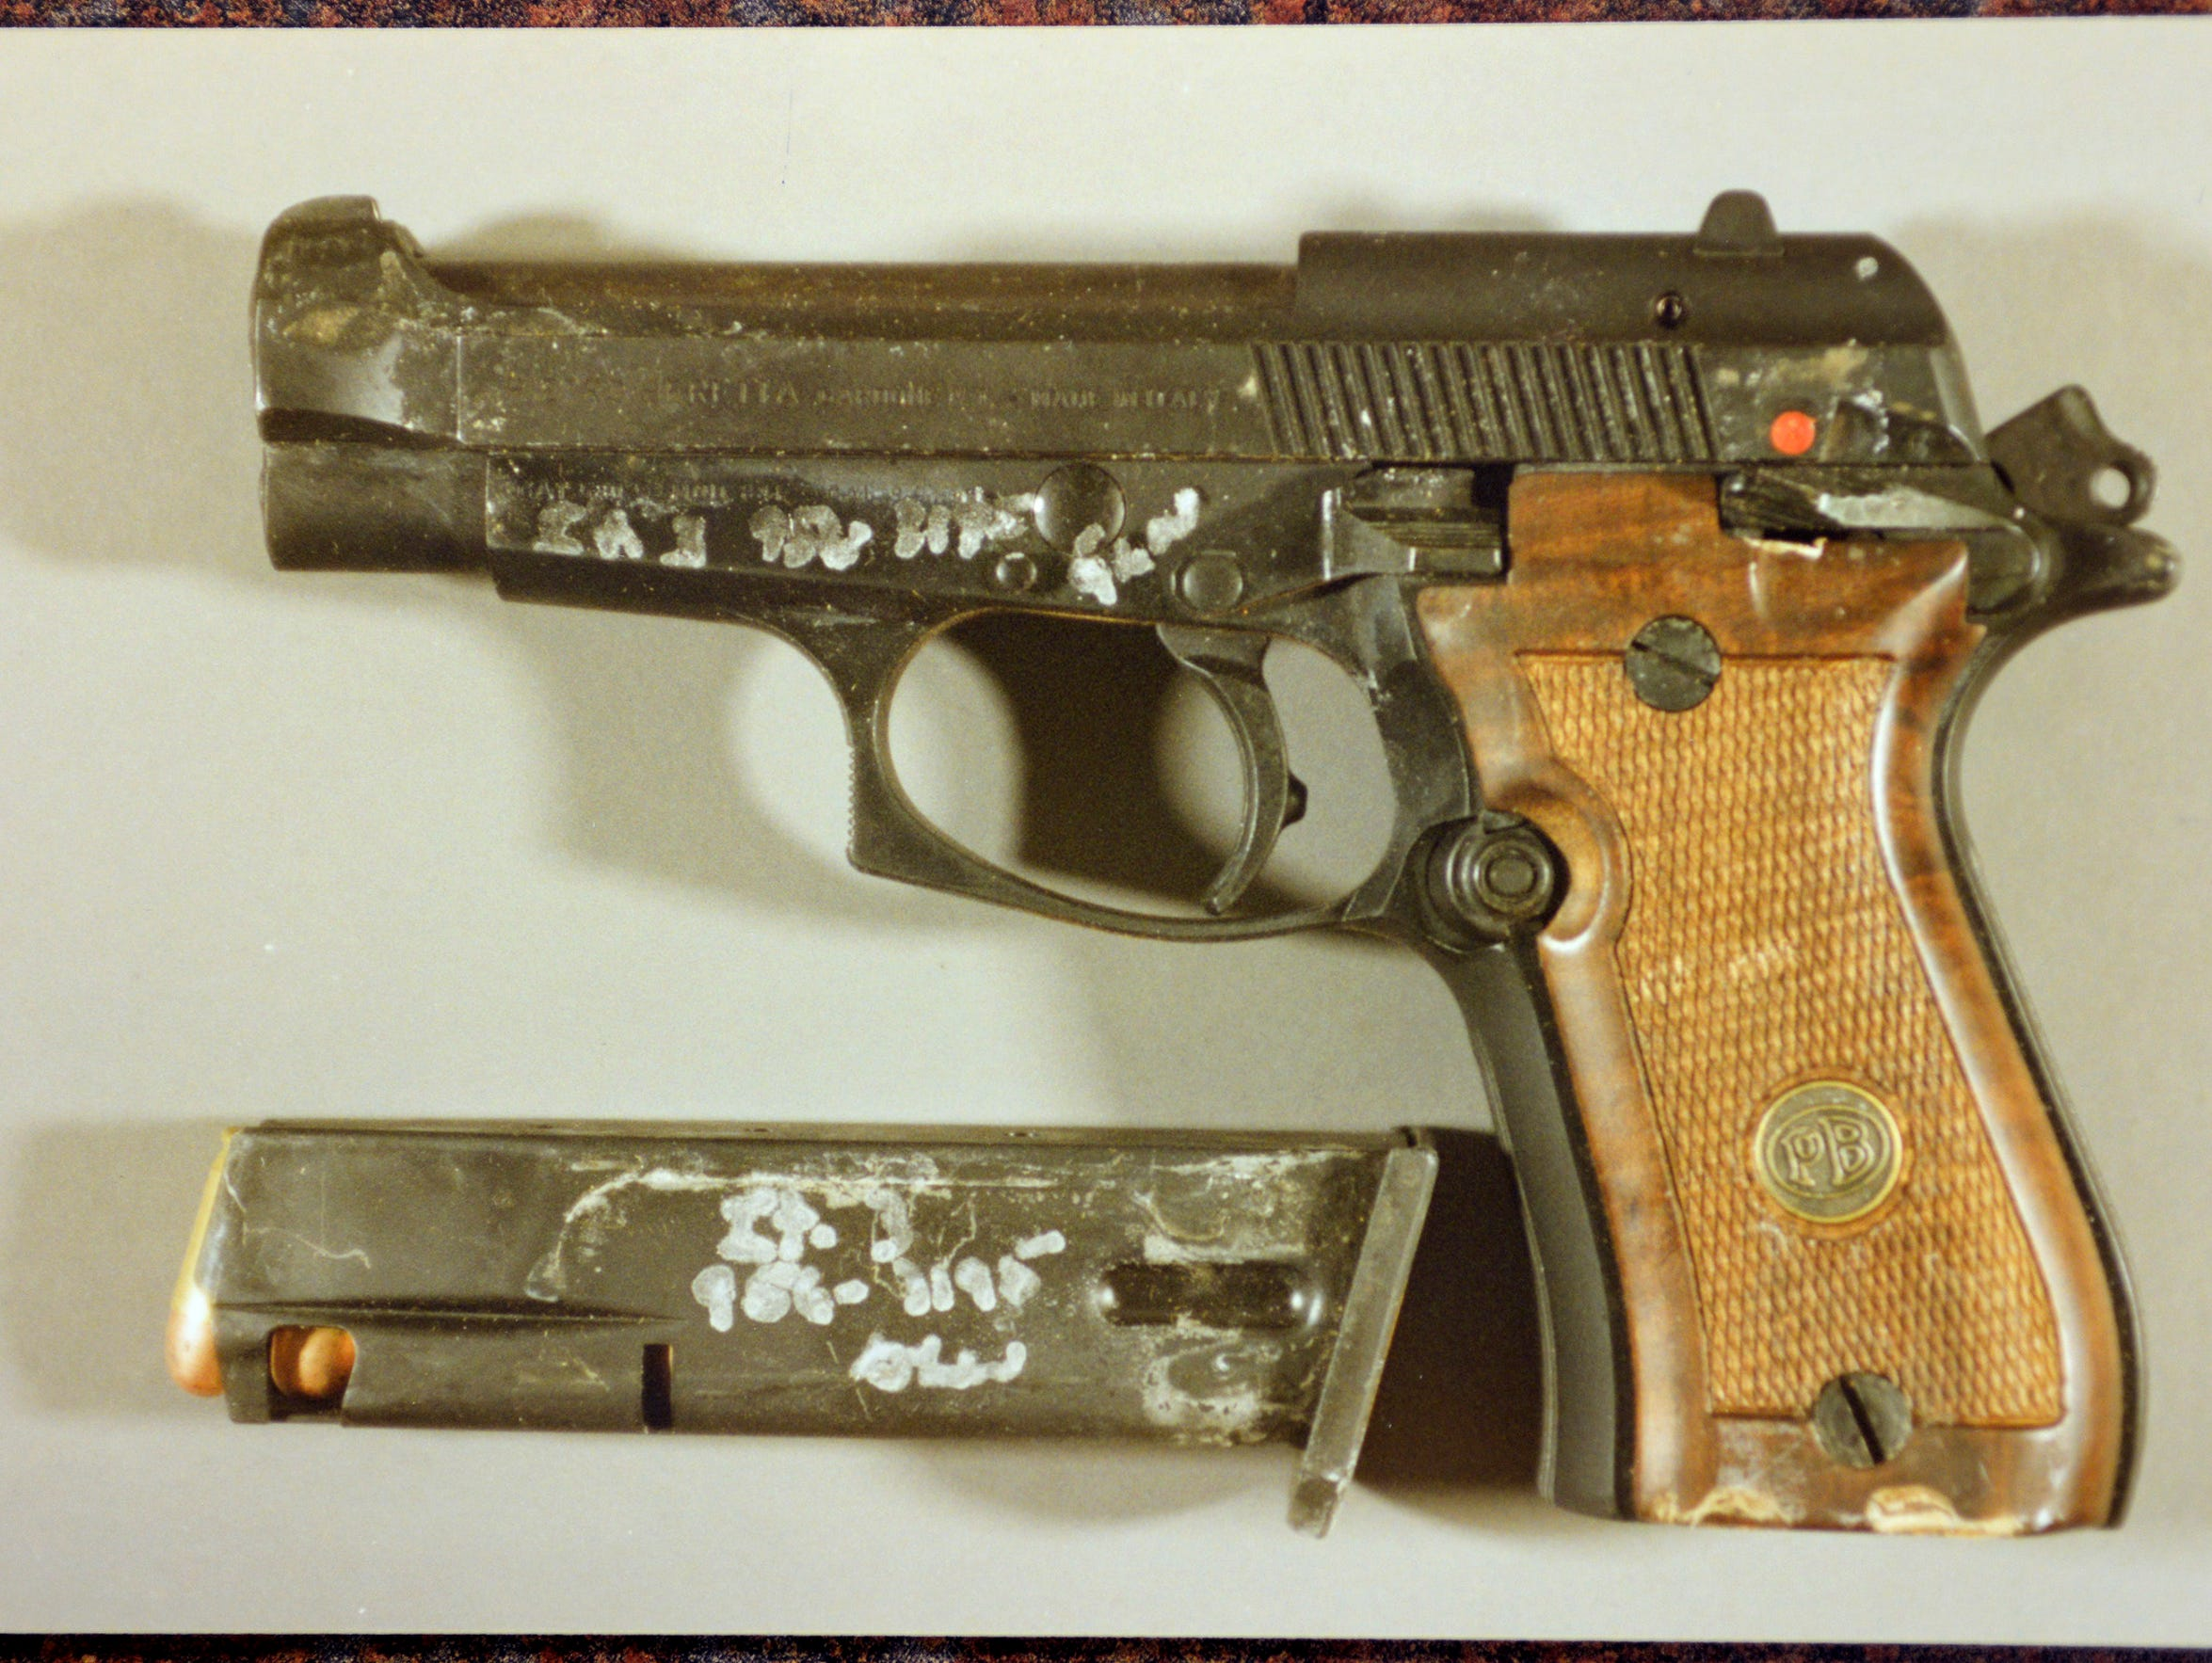 A .380 Beretta pistol was used by Thomas Kantor to